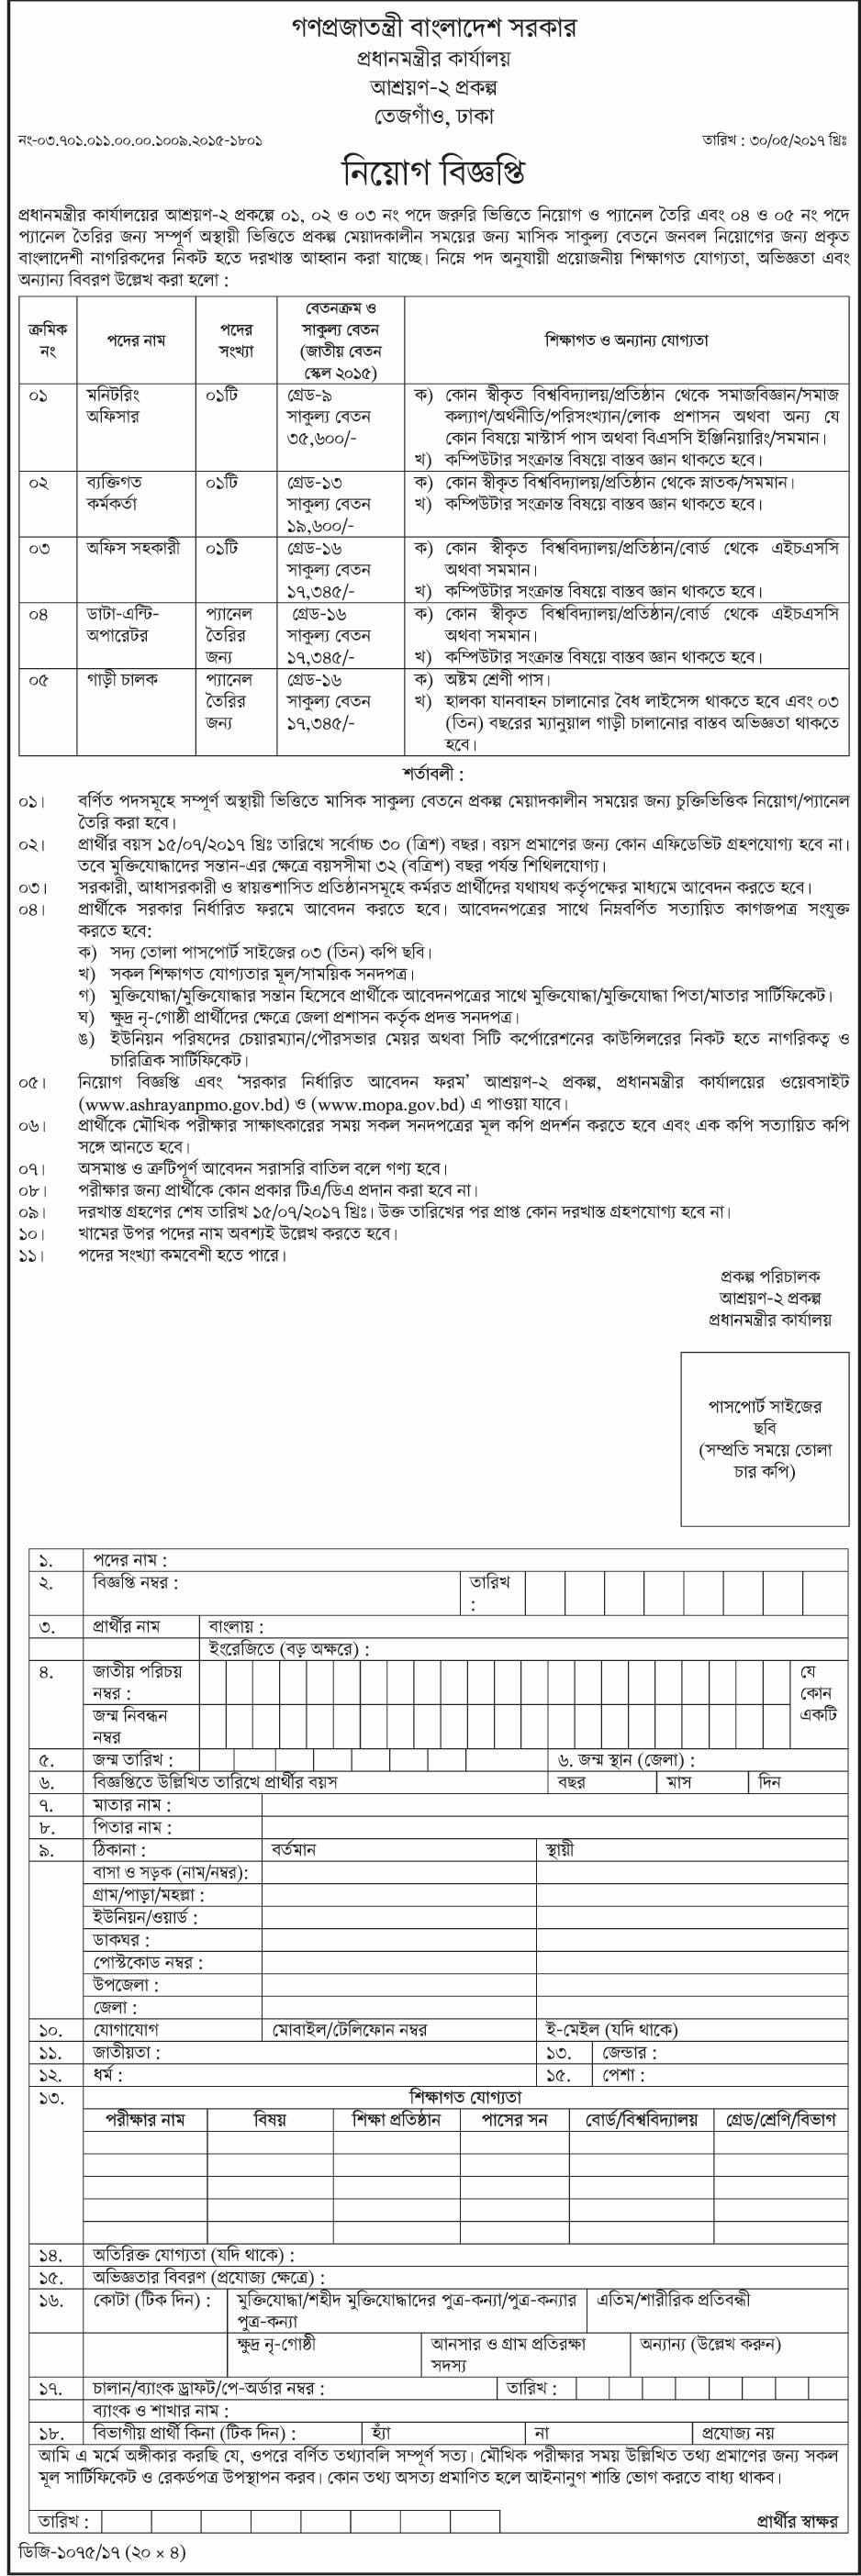 www mopa gov bd application form